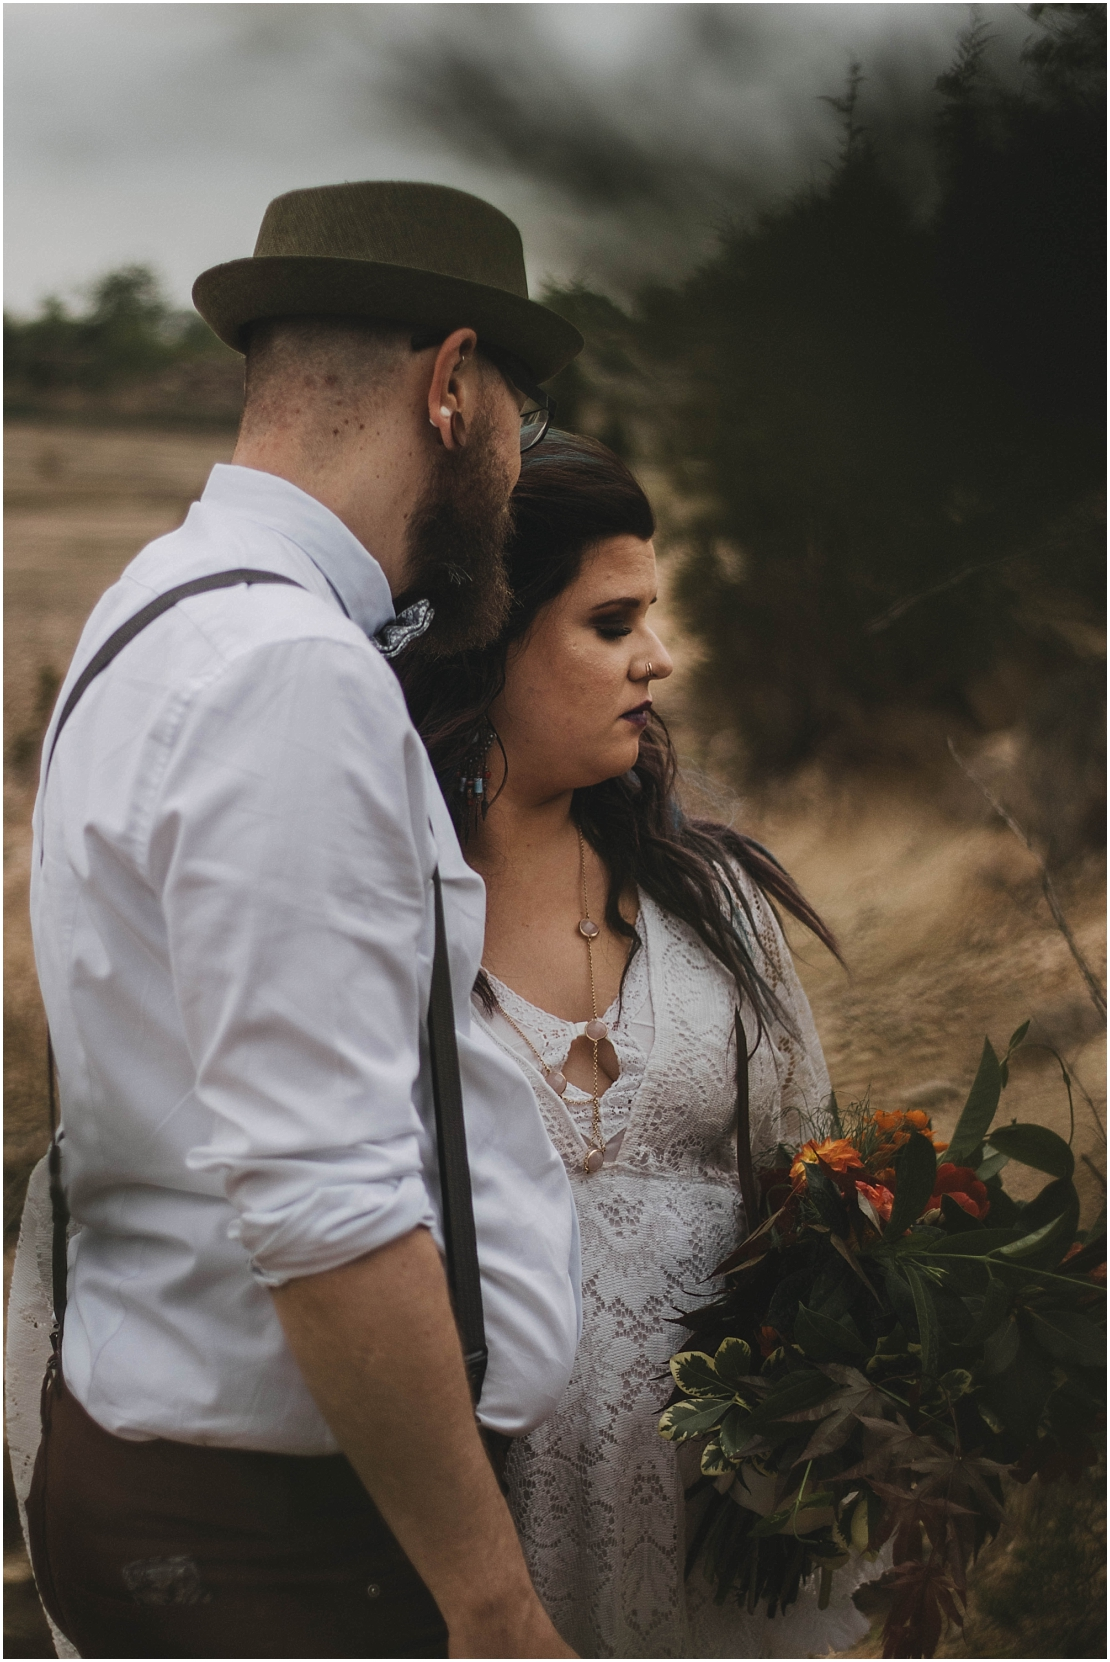 Desert Inspired Elopement | Oakes Quarry Park | Fairborn, Ohio